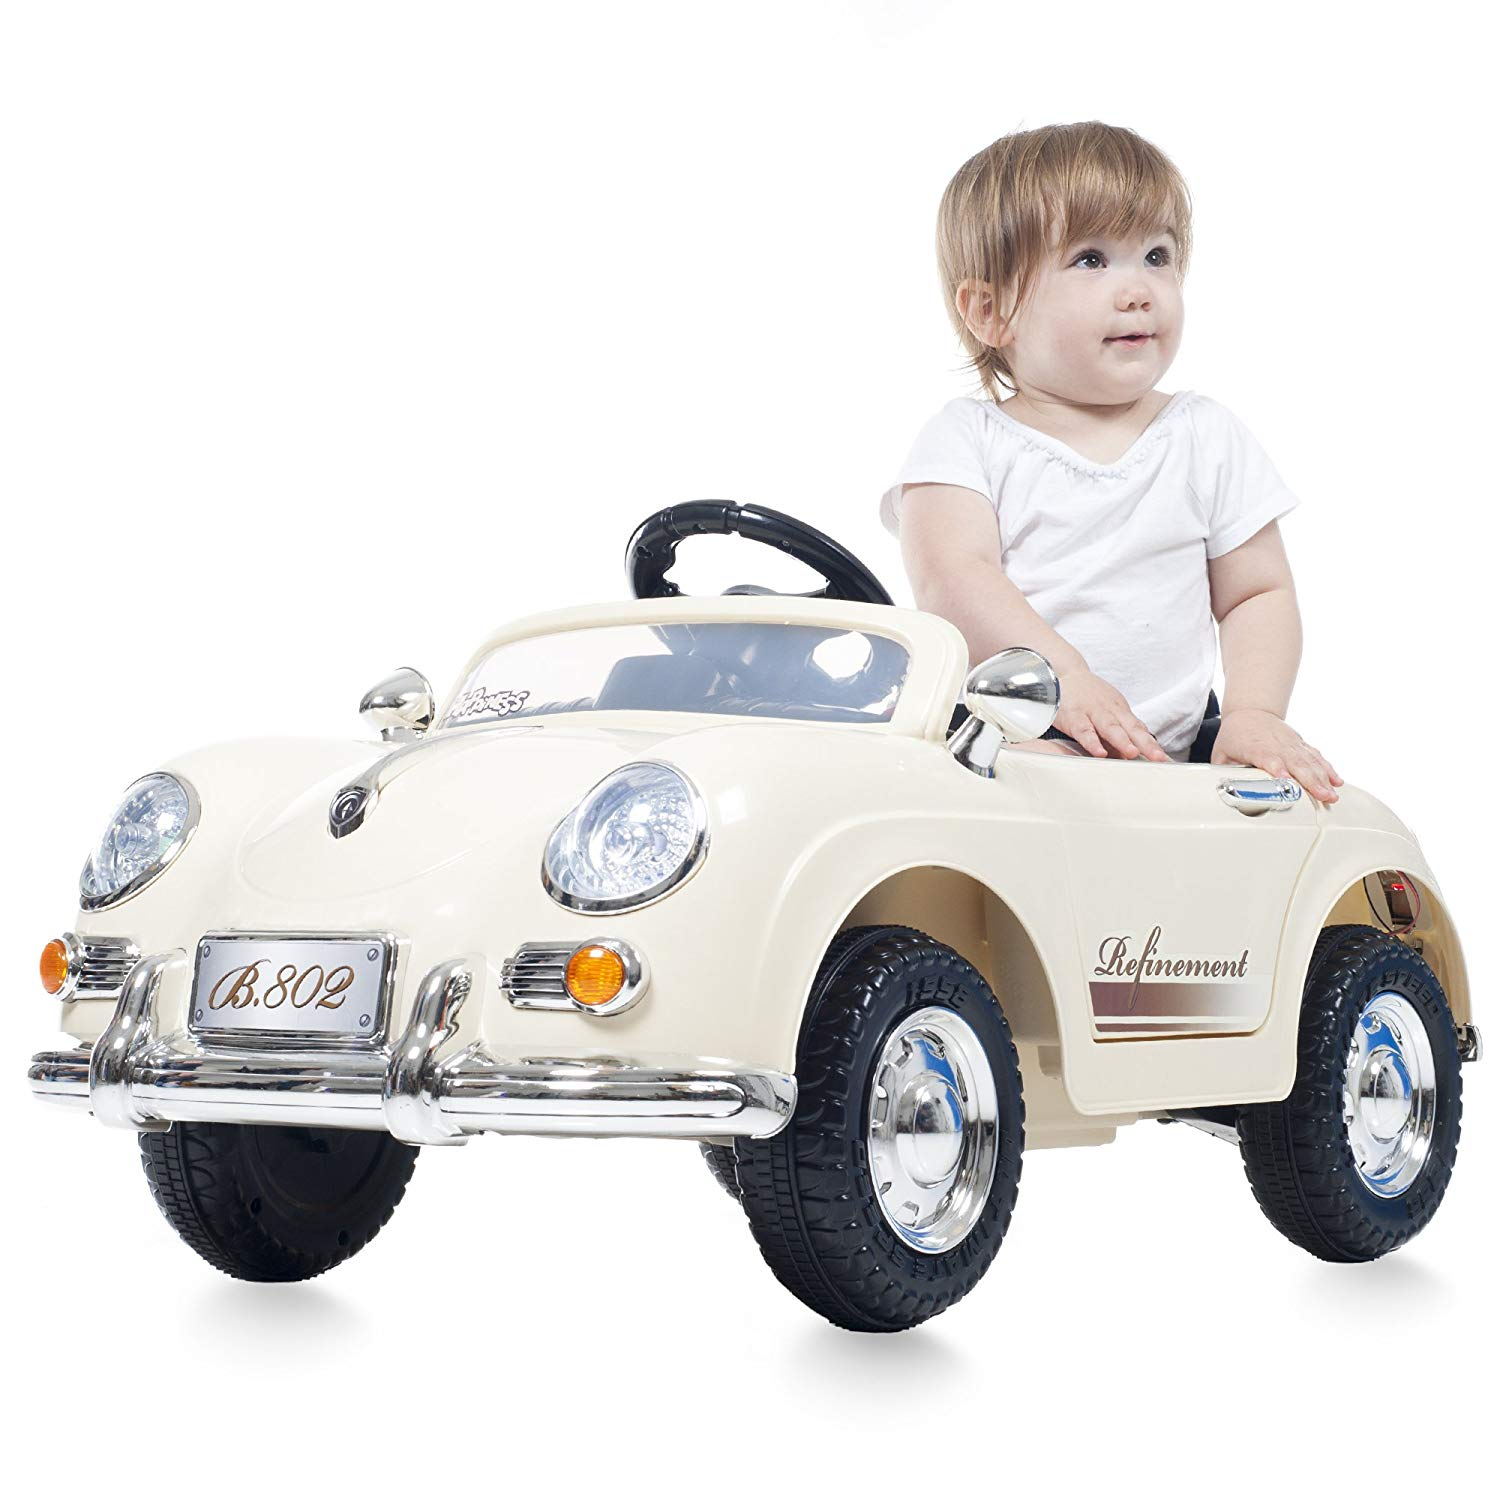 Battery Operated Vehicles for Kids New Lil Rider Ride On toy Car Battery Operated Classic